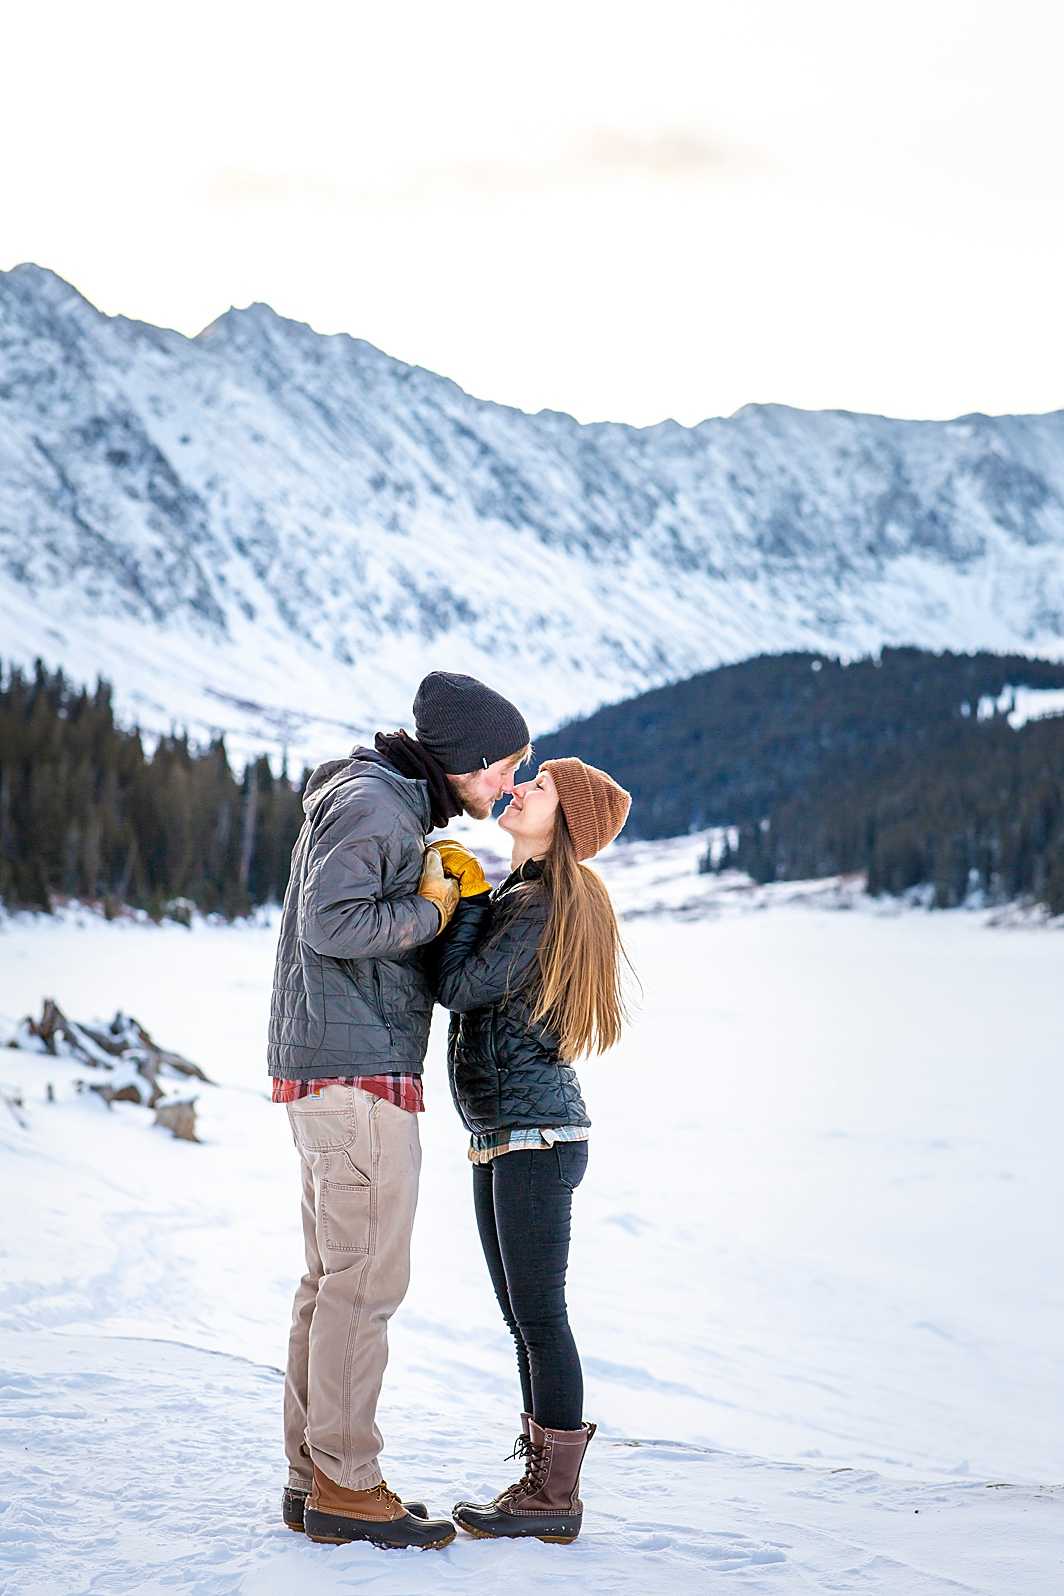 Engaged couple kisses in Breckenridge, Colorado. Photo taken by Hillary Shedd Photographer, Colorado Wedding Photographer.